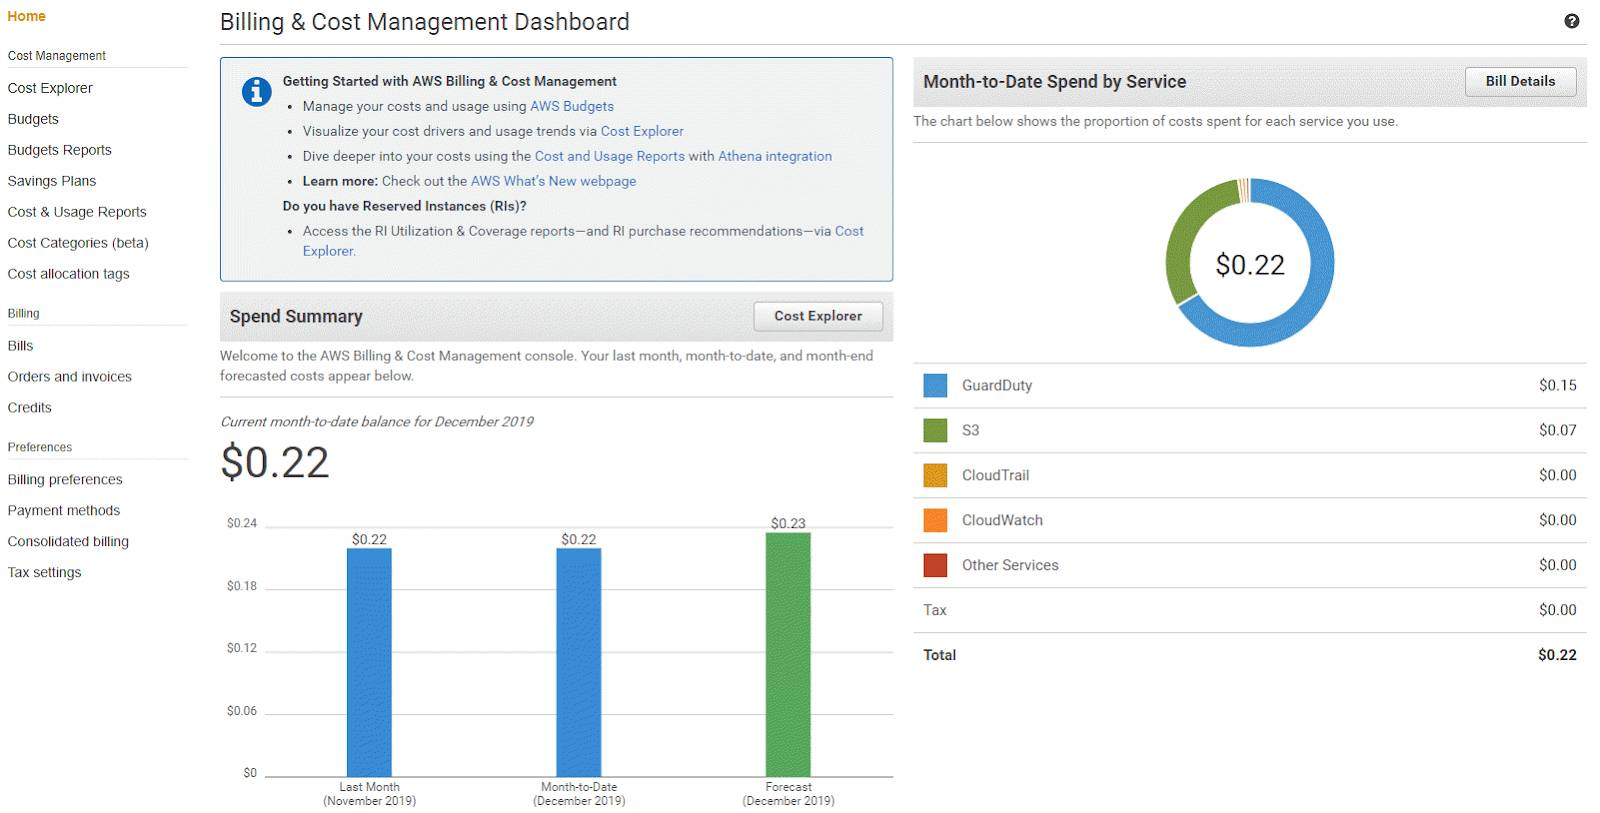 the Billing & Cost Management Dashboard with spend summaries and links to AWS Cost Management tools